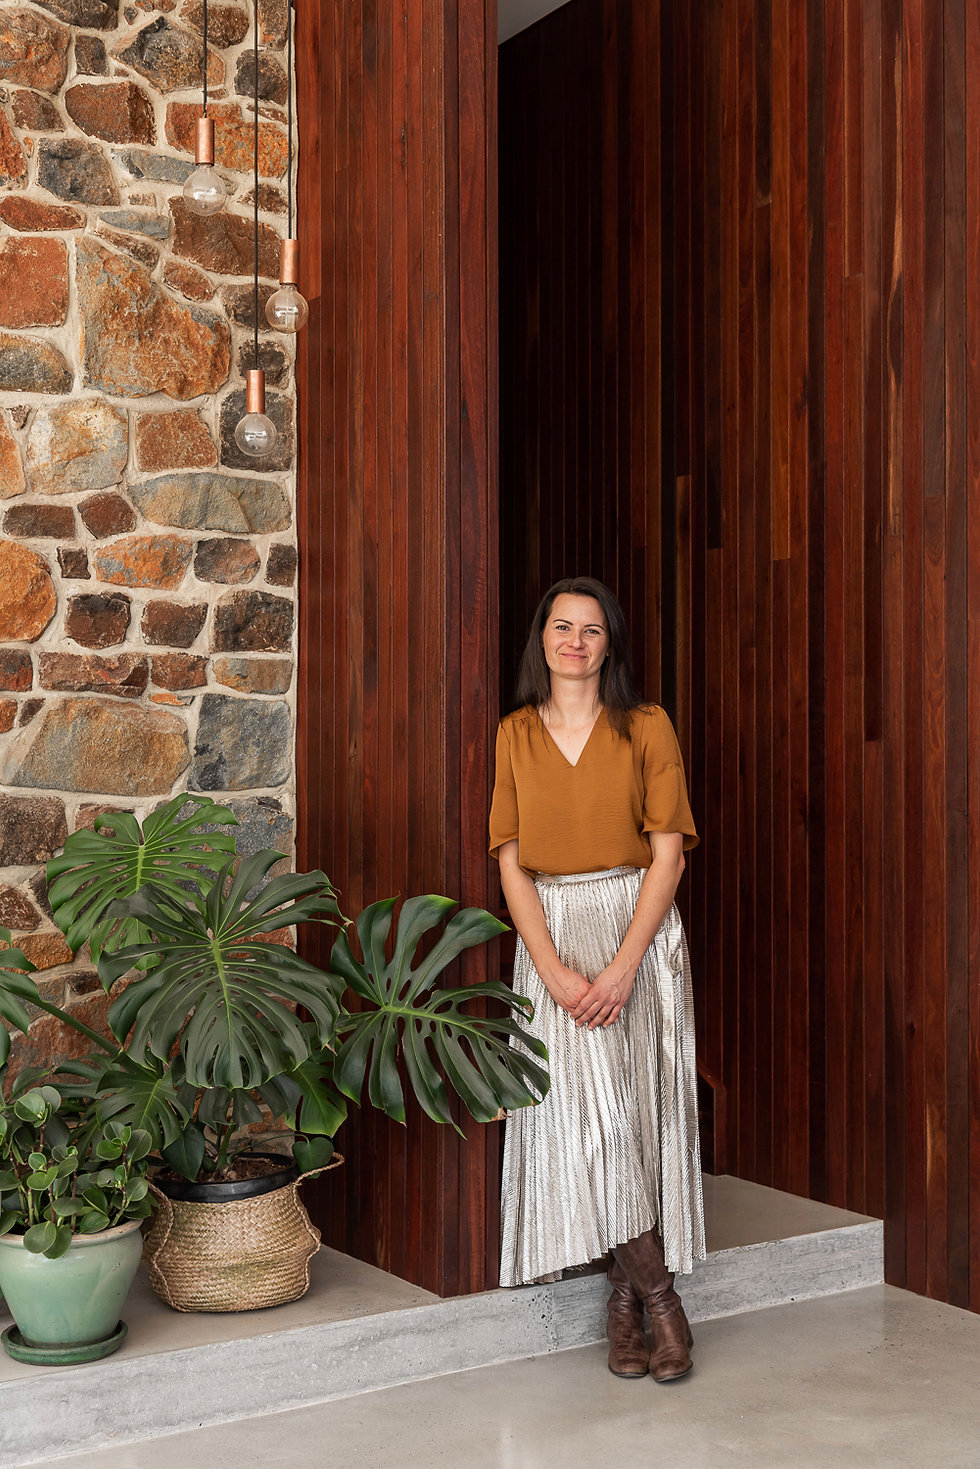 Alice Ostrowski - Director and Wellness Architect, AO Architects